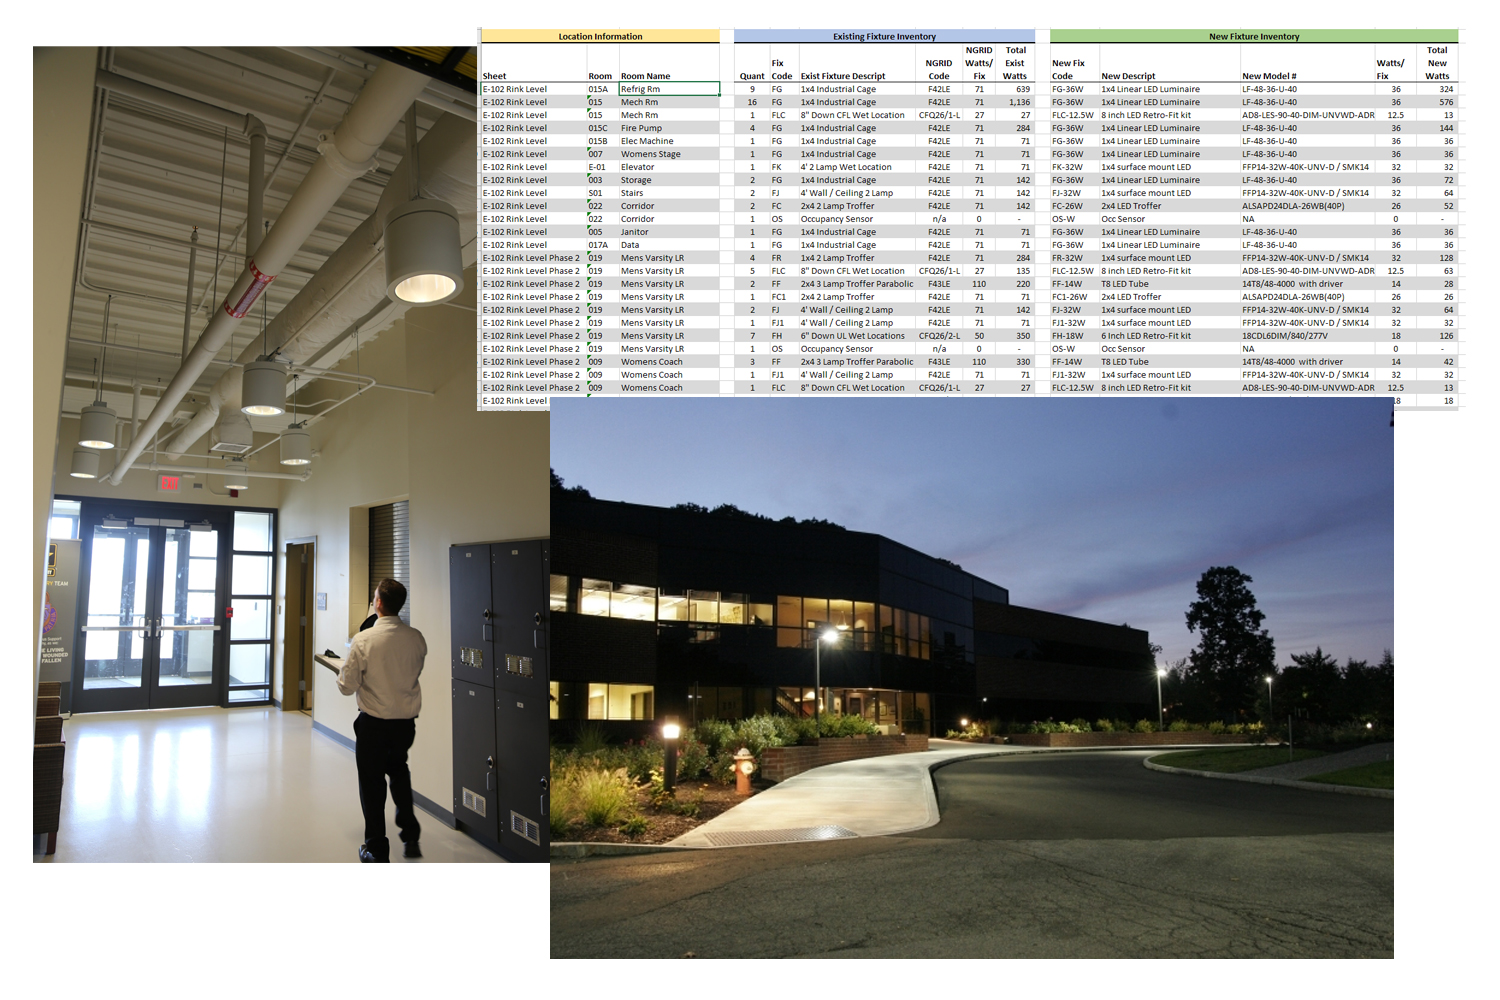 Audit Schedules to Lighting Solutions - Whether it is a industrial space, or a Class A Office Park, lighting solutions are designed to provide lighting performance and to fit within the style of the facility. The audit schedules provide the foundation for the design and fit to the client's lighting solution, and energy saving upgrades.